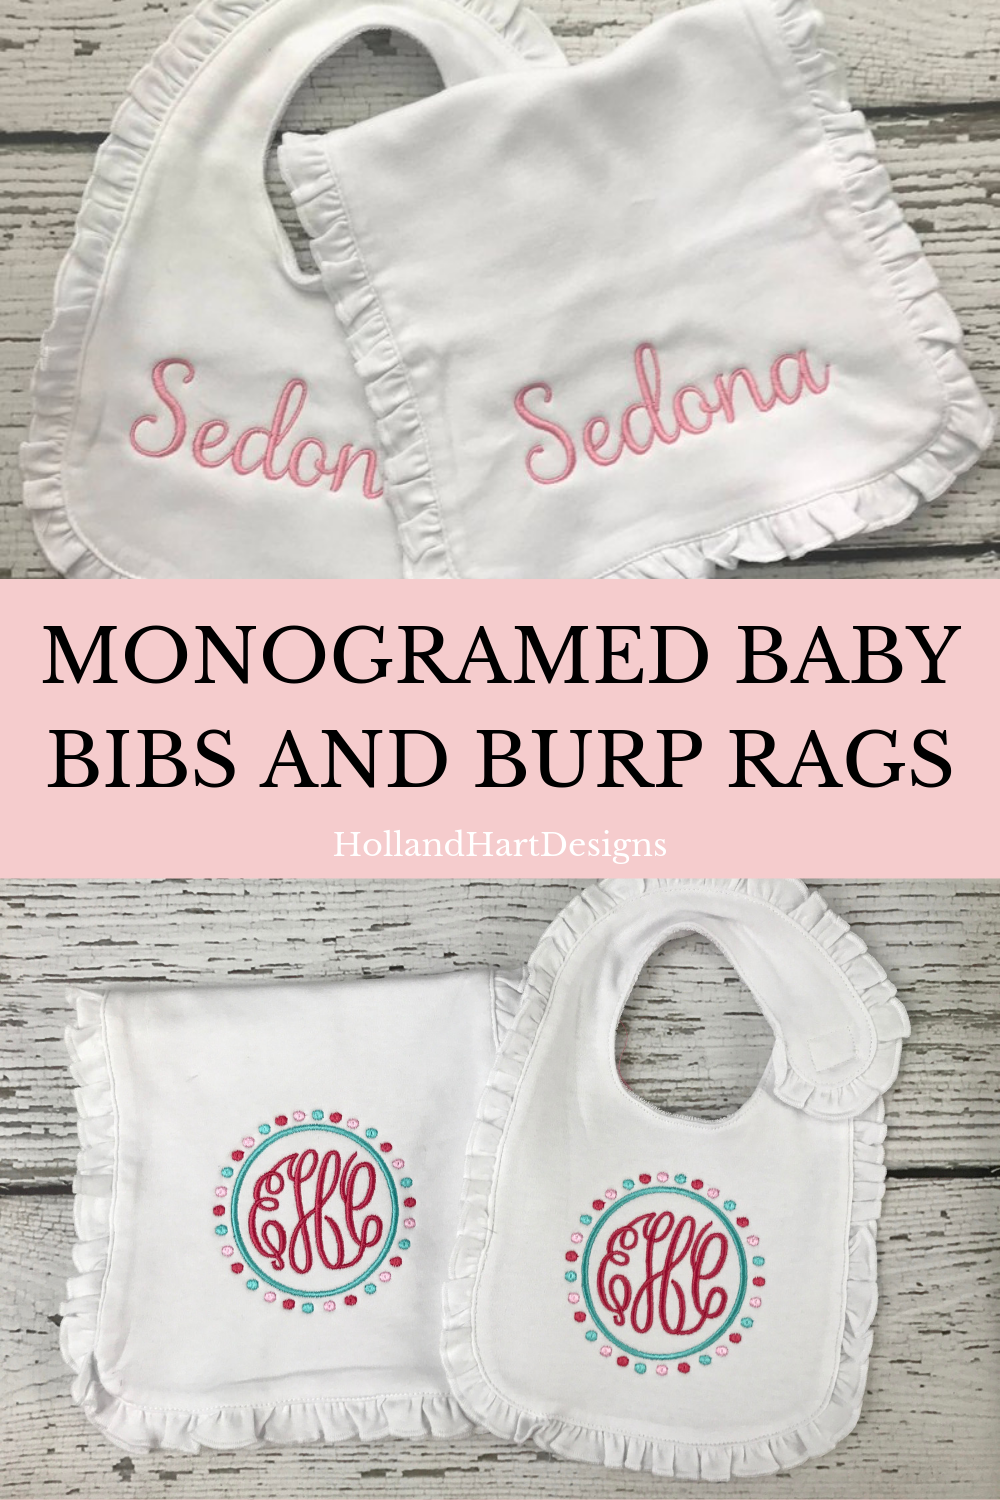 Personalized embroidered baby bib and burp cloth!!